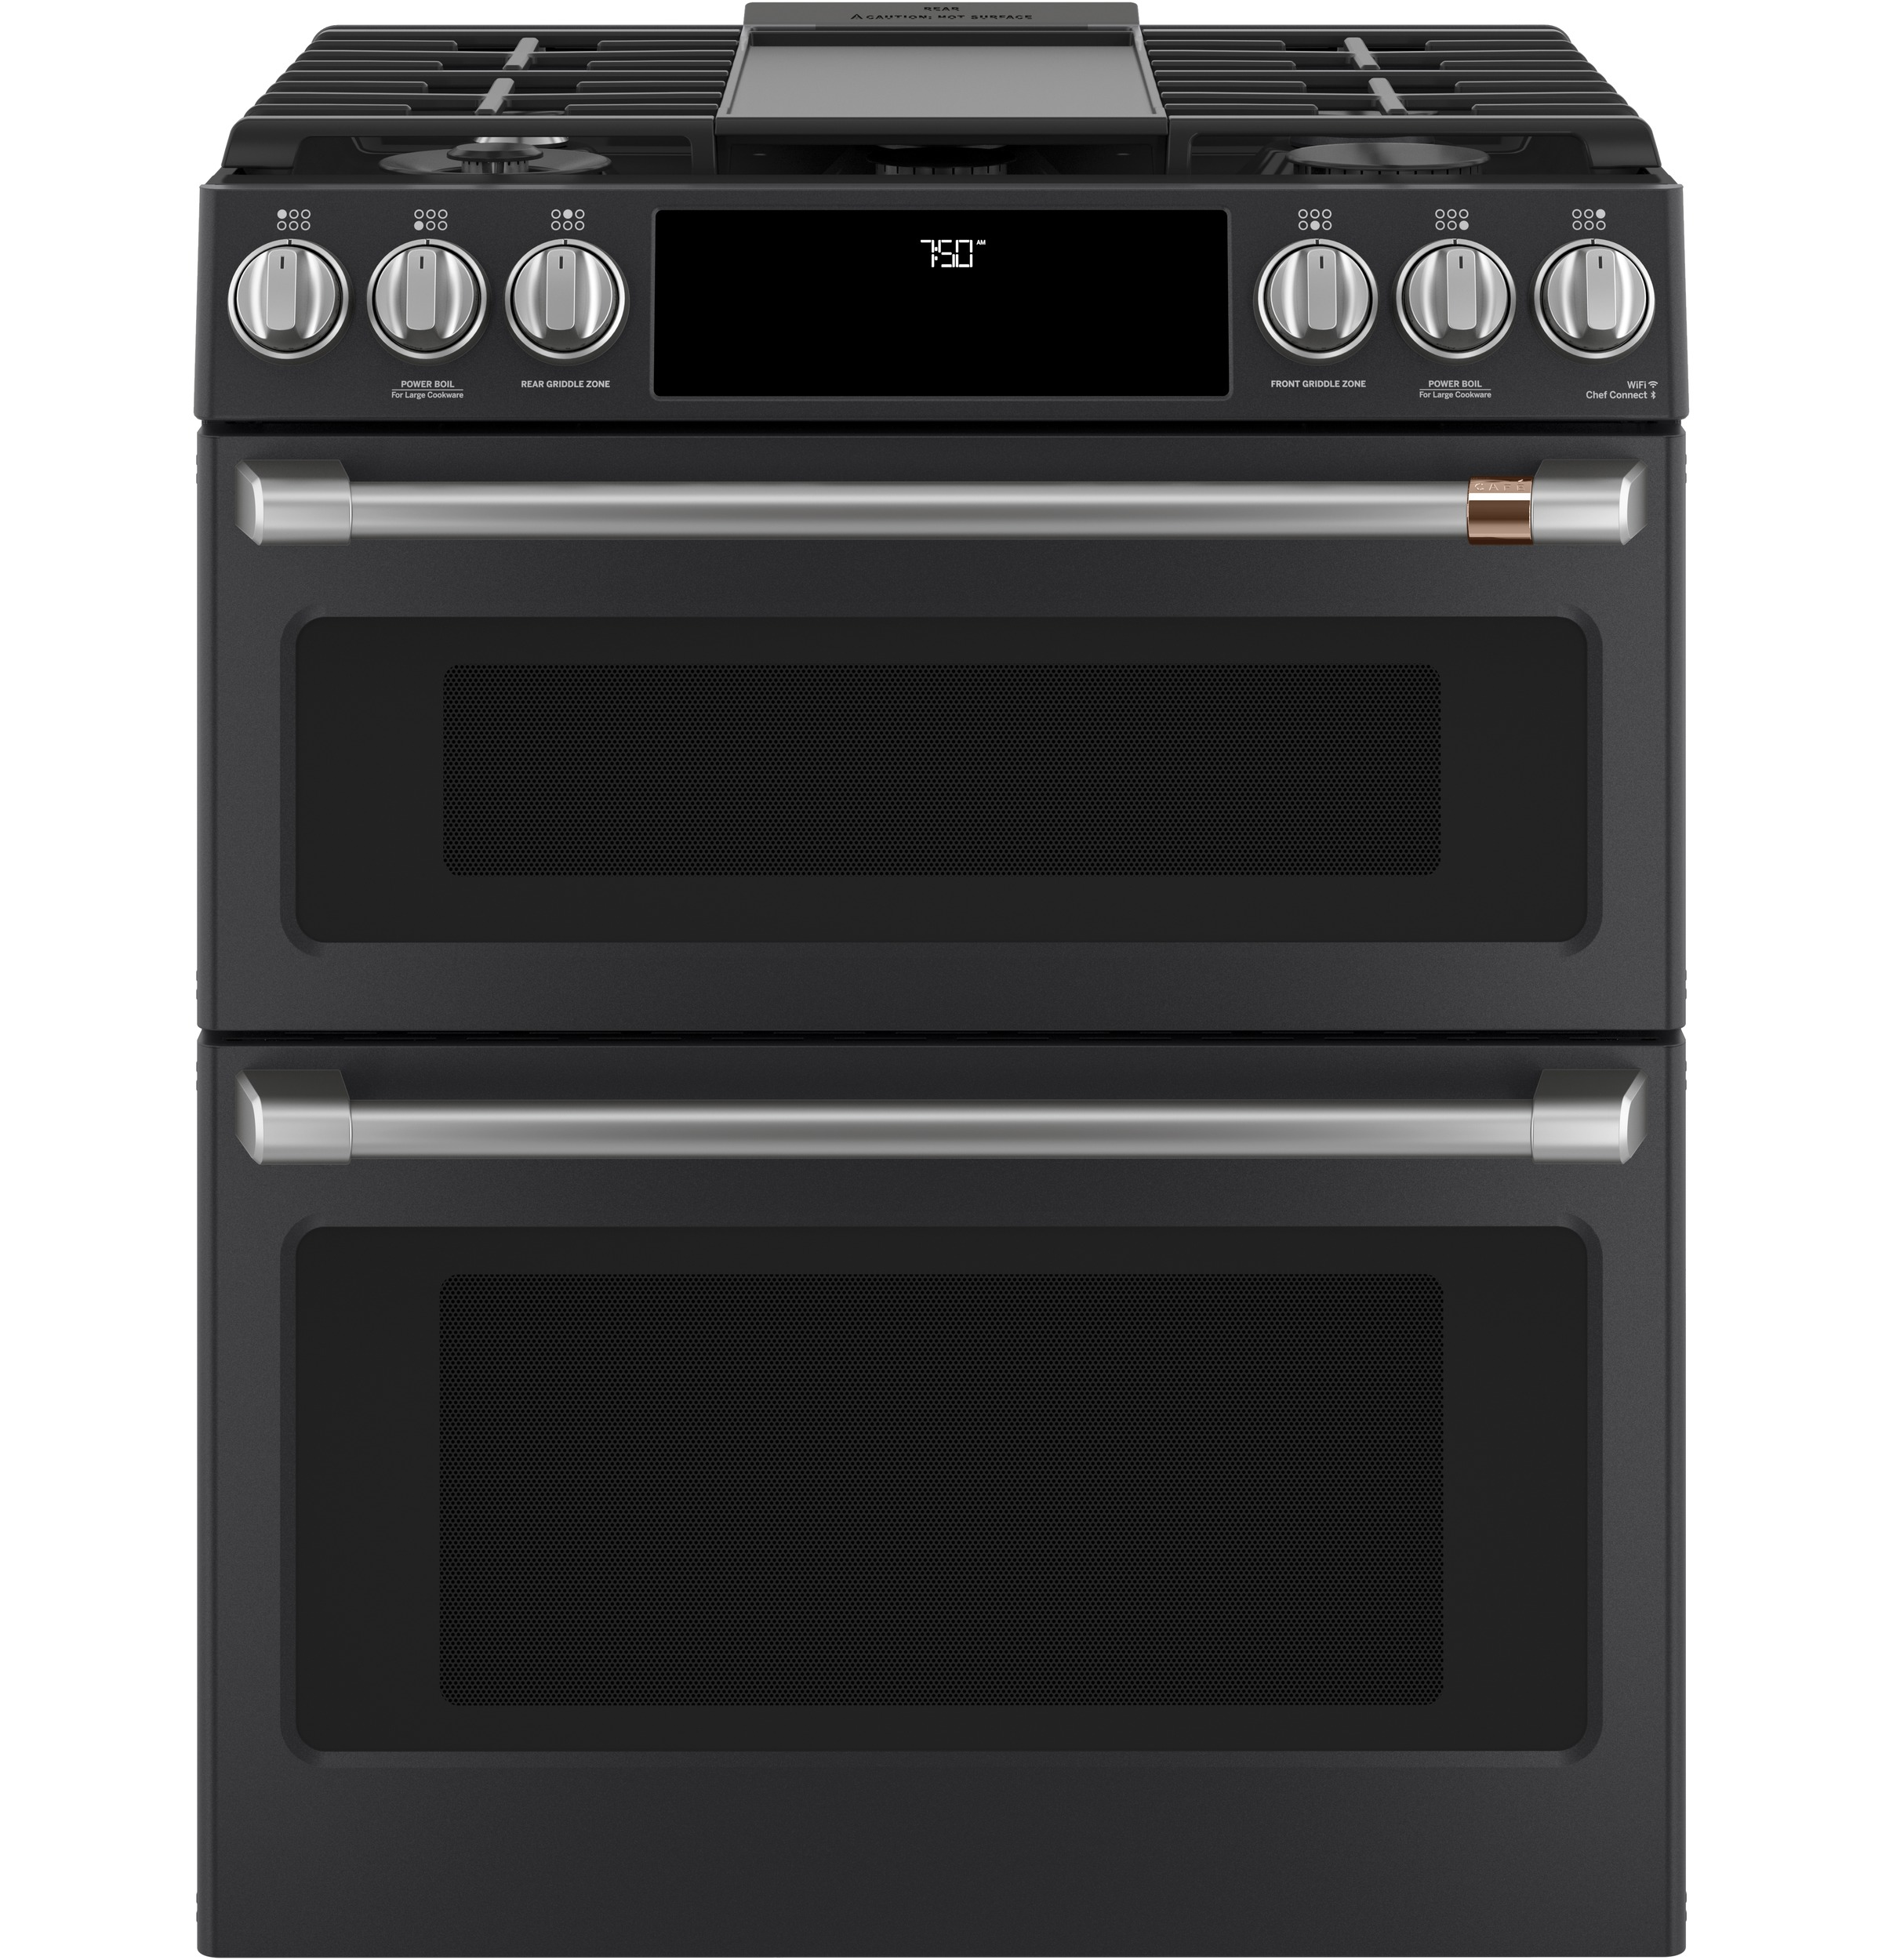 "Model: CGS750P3MD1 | Cafe Café™ 30"" Smart Slide-In, Front-Control, Gas Double-Oven Range with Convection"